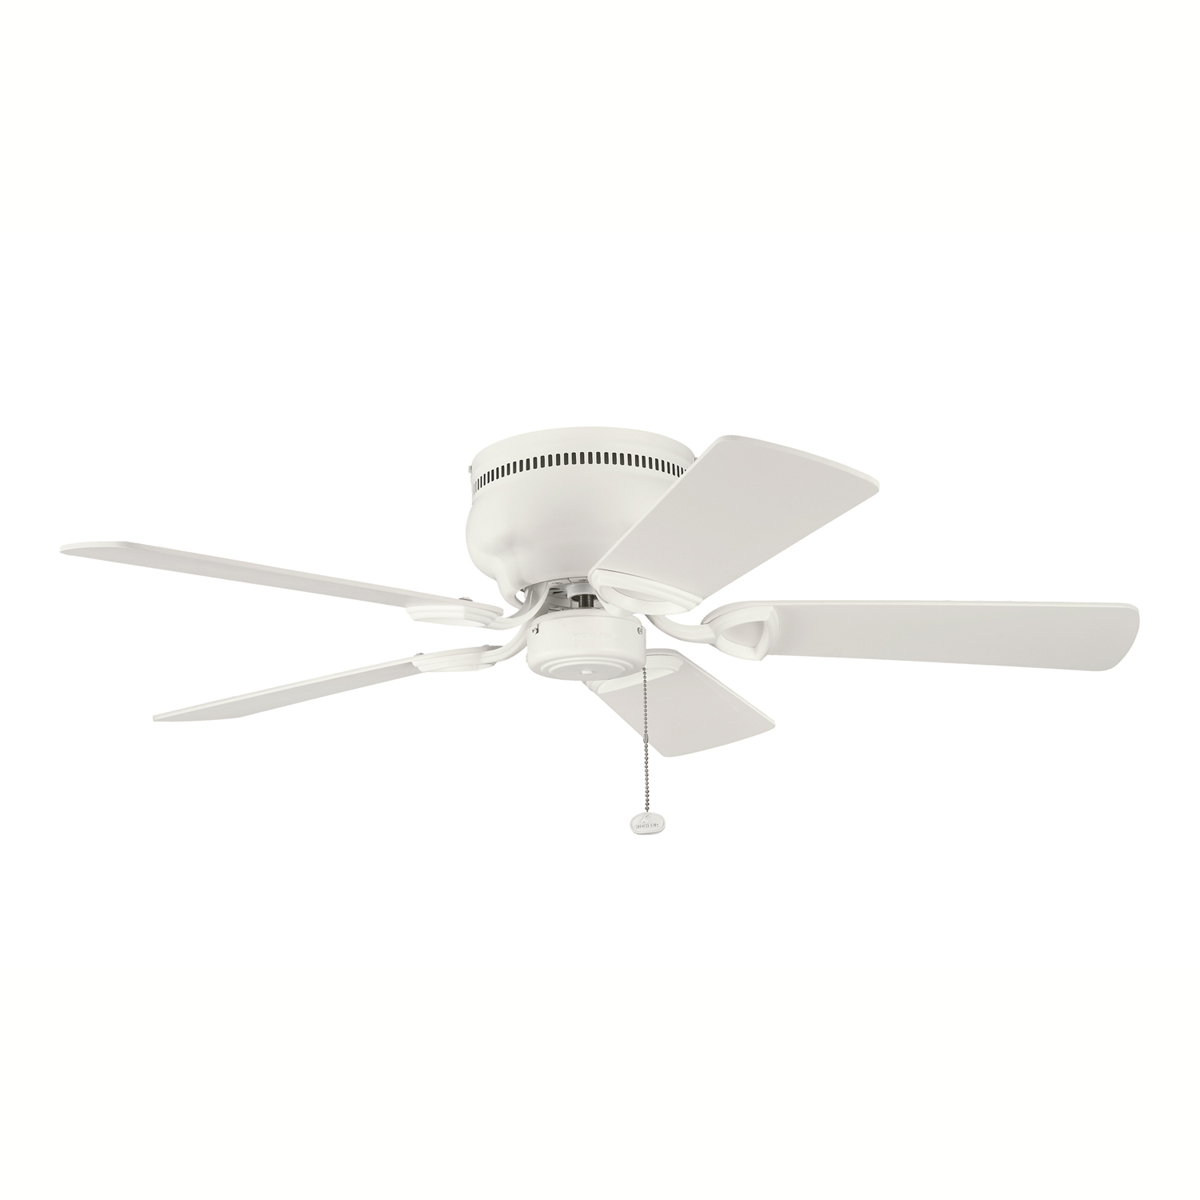 Childrens Ceiling Fans Ellington Wc42ww5c3f Wyman 42 Inch Hugger Ceiling Fan W 3